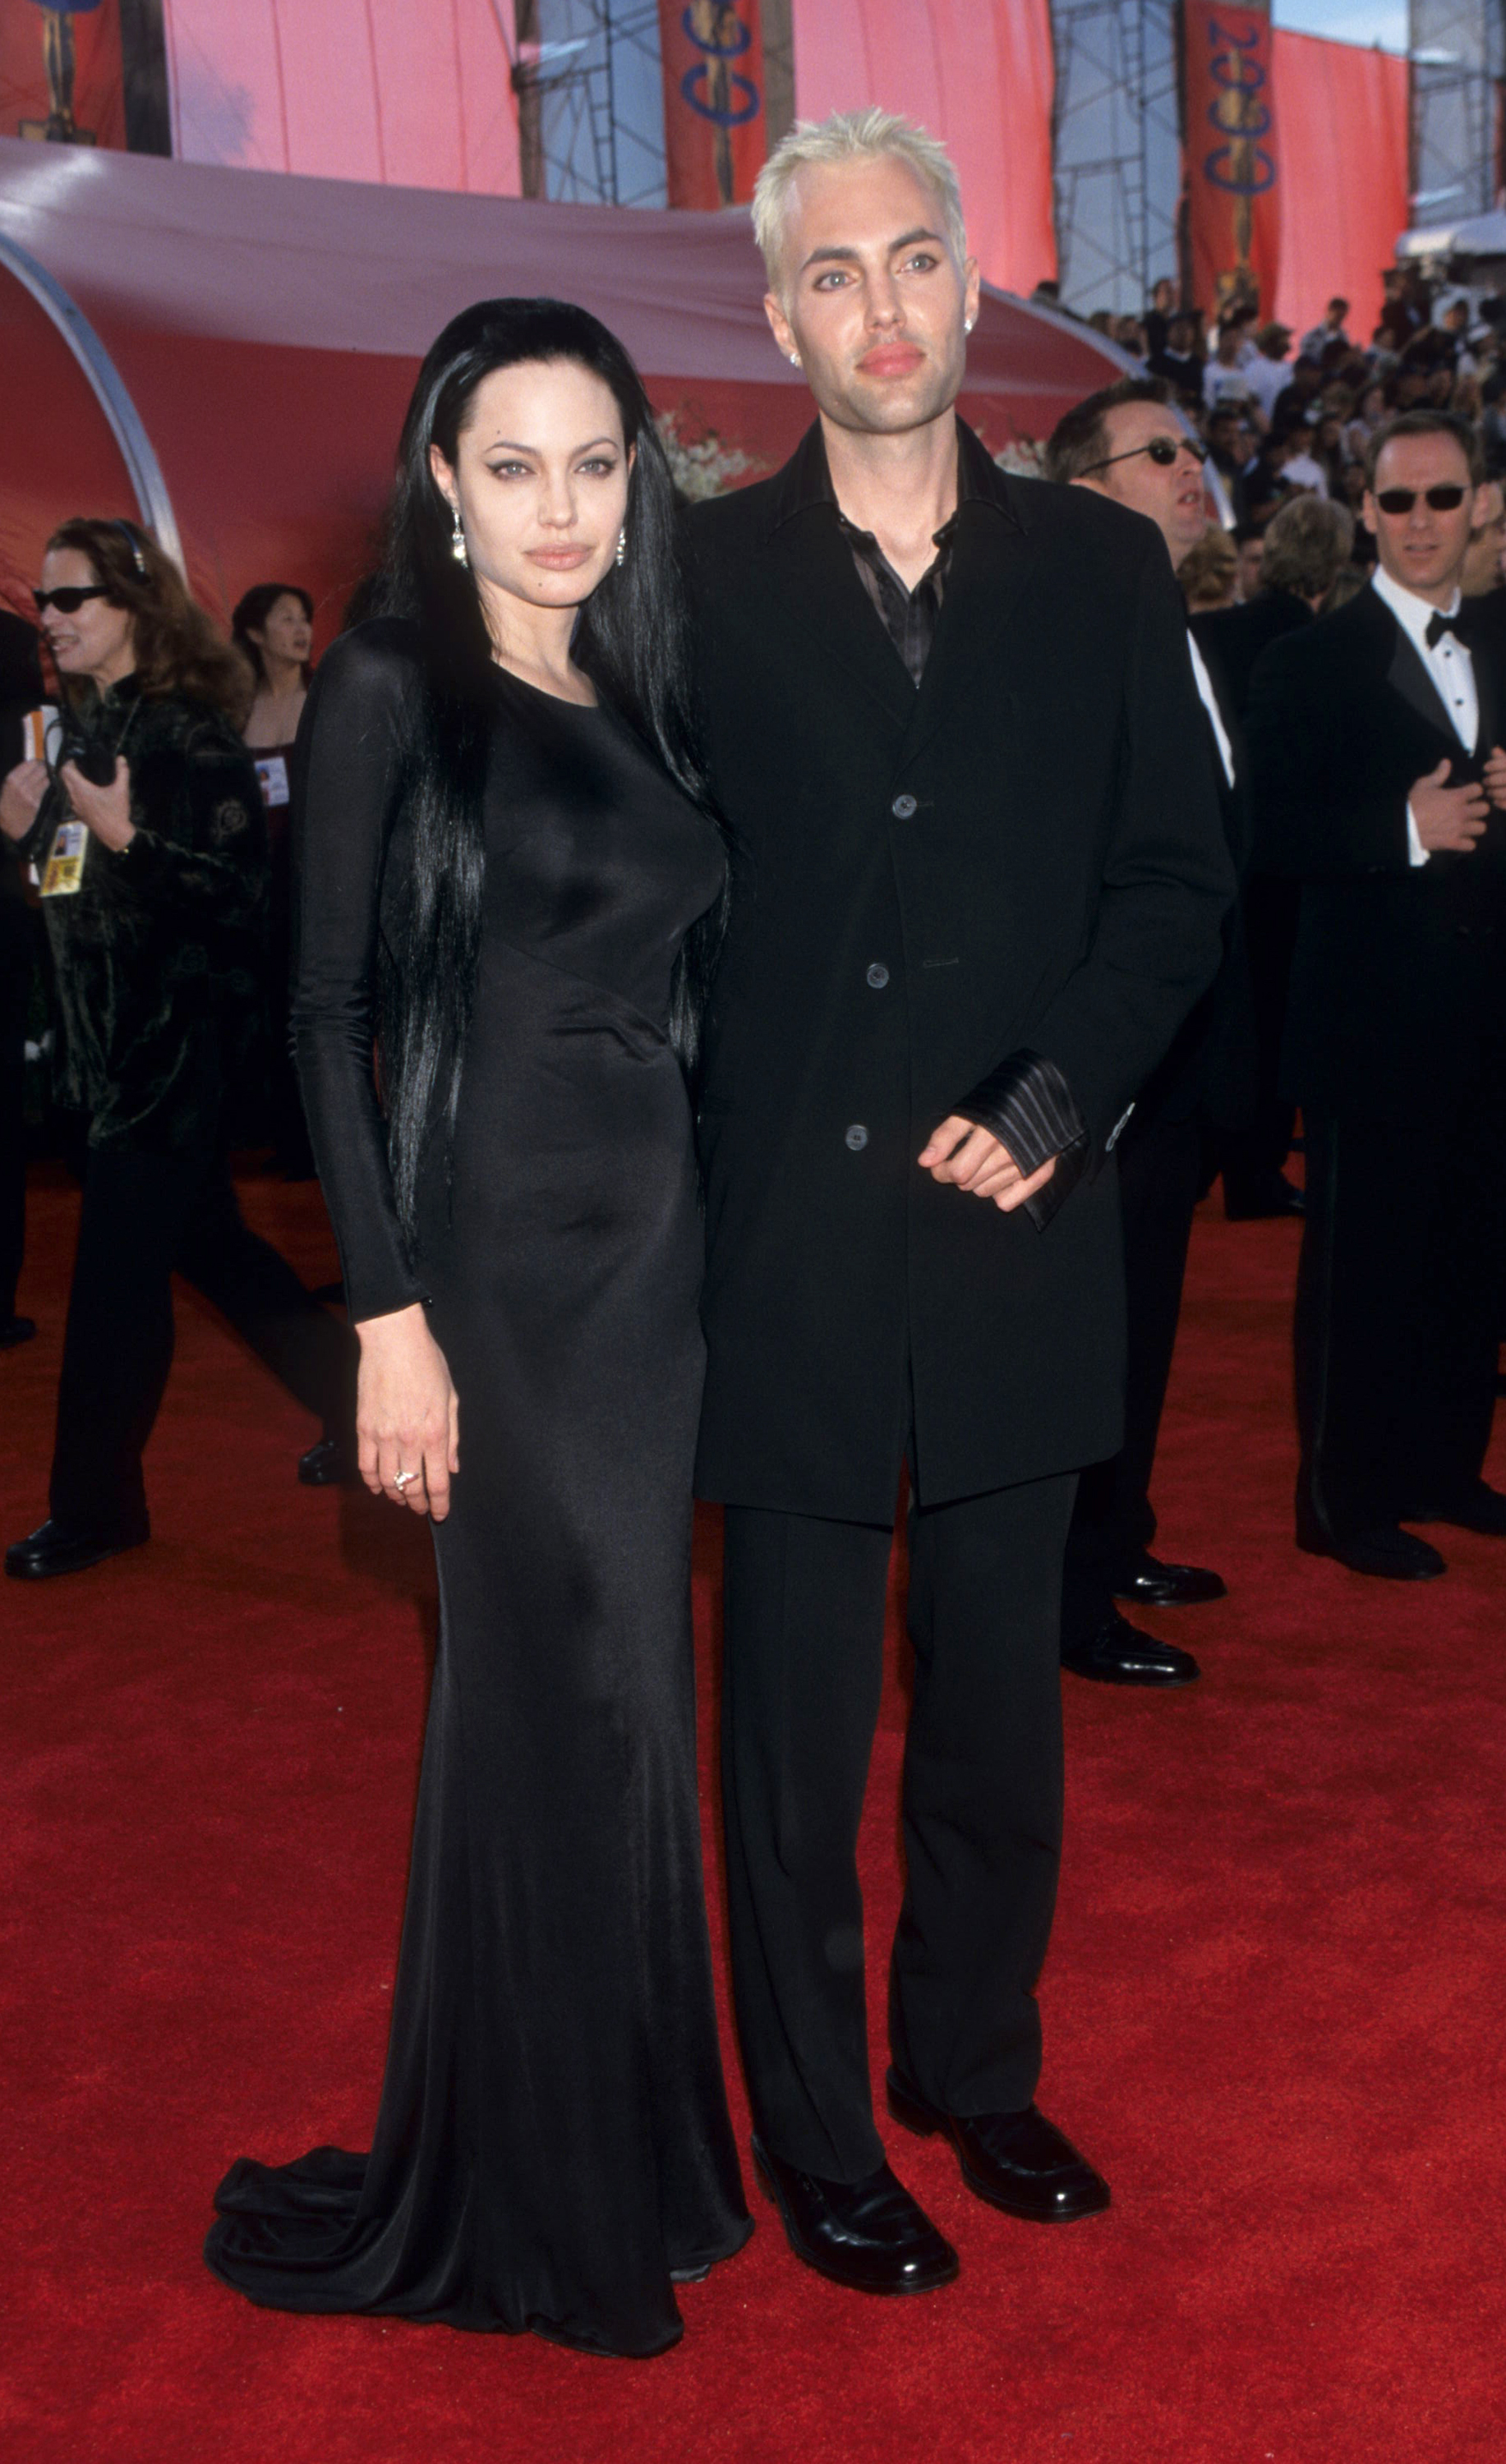 angelina jolie in a goth dress and dark hair on the red carpet